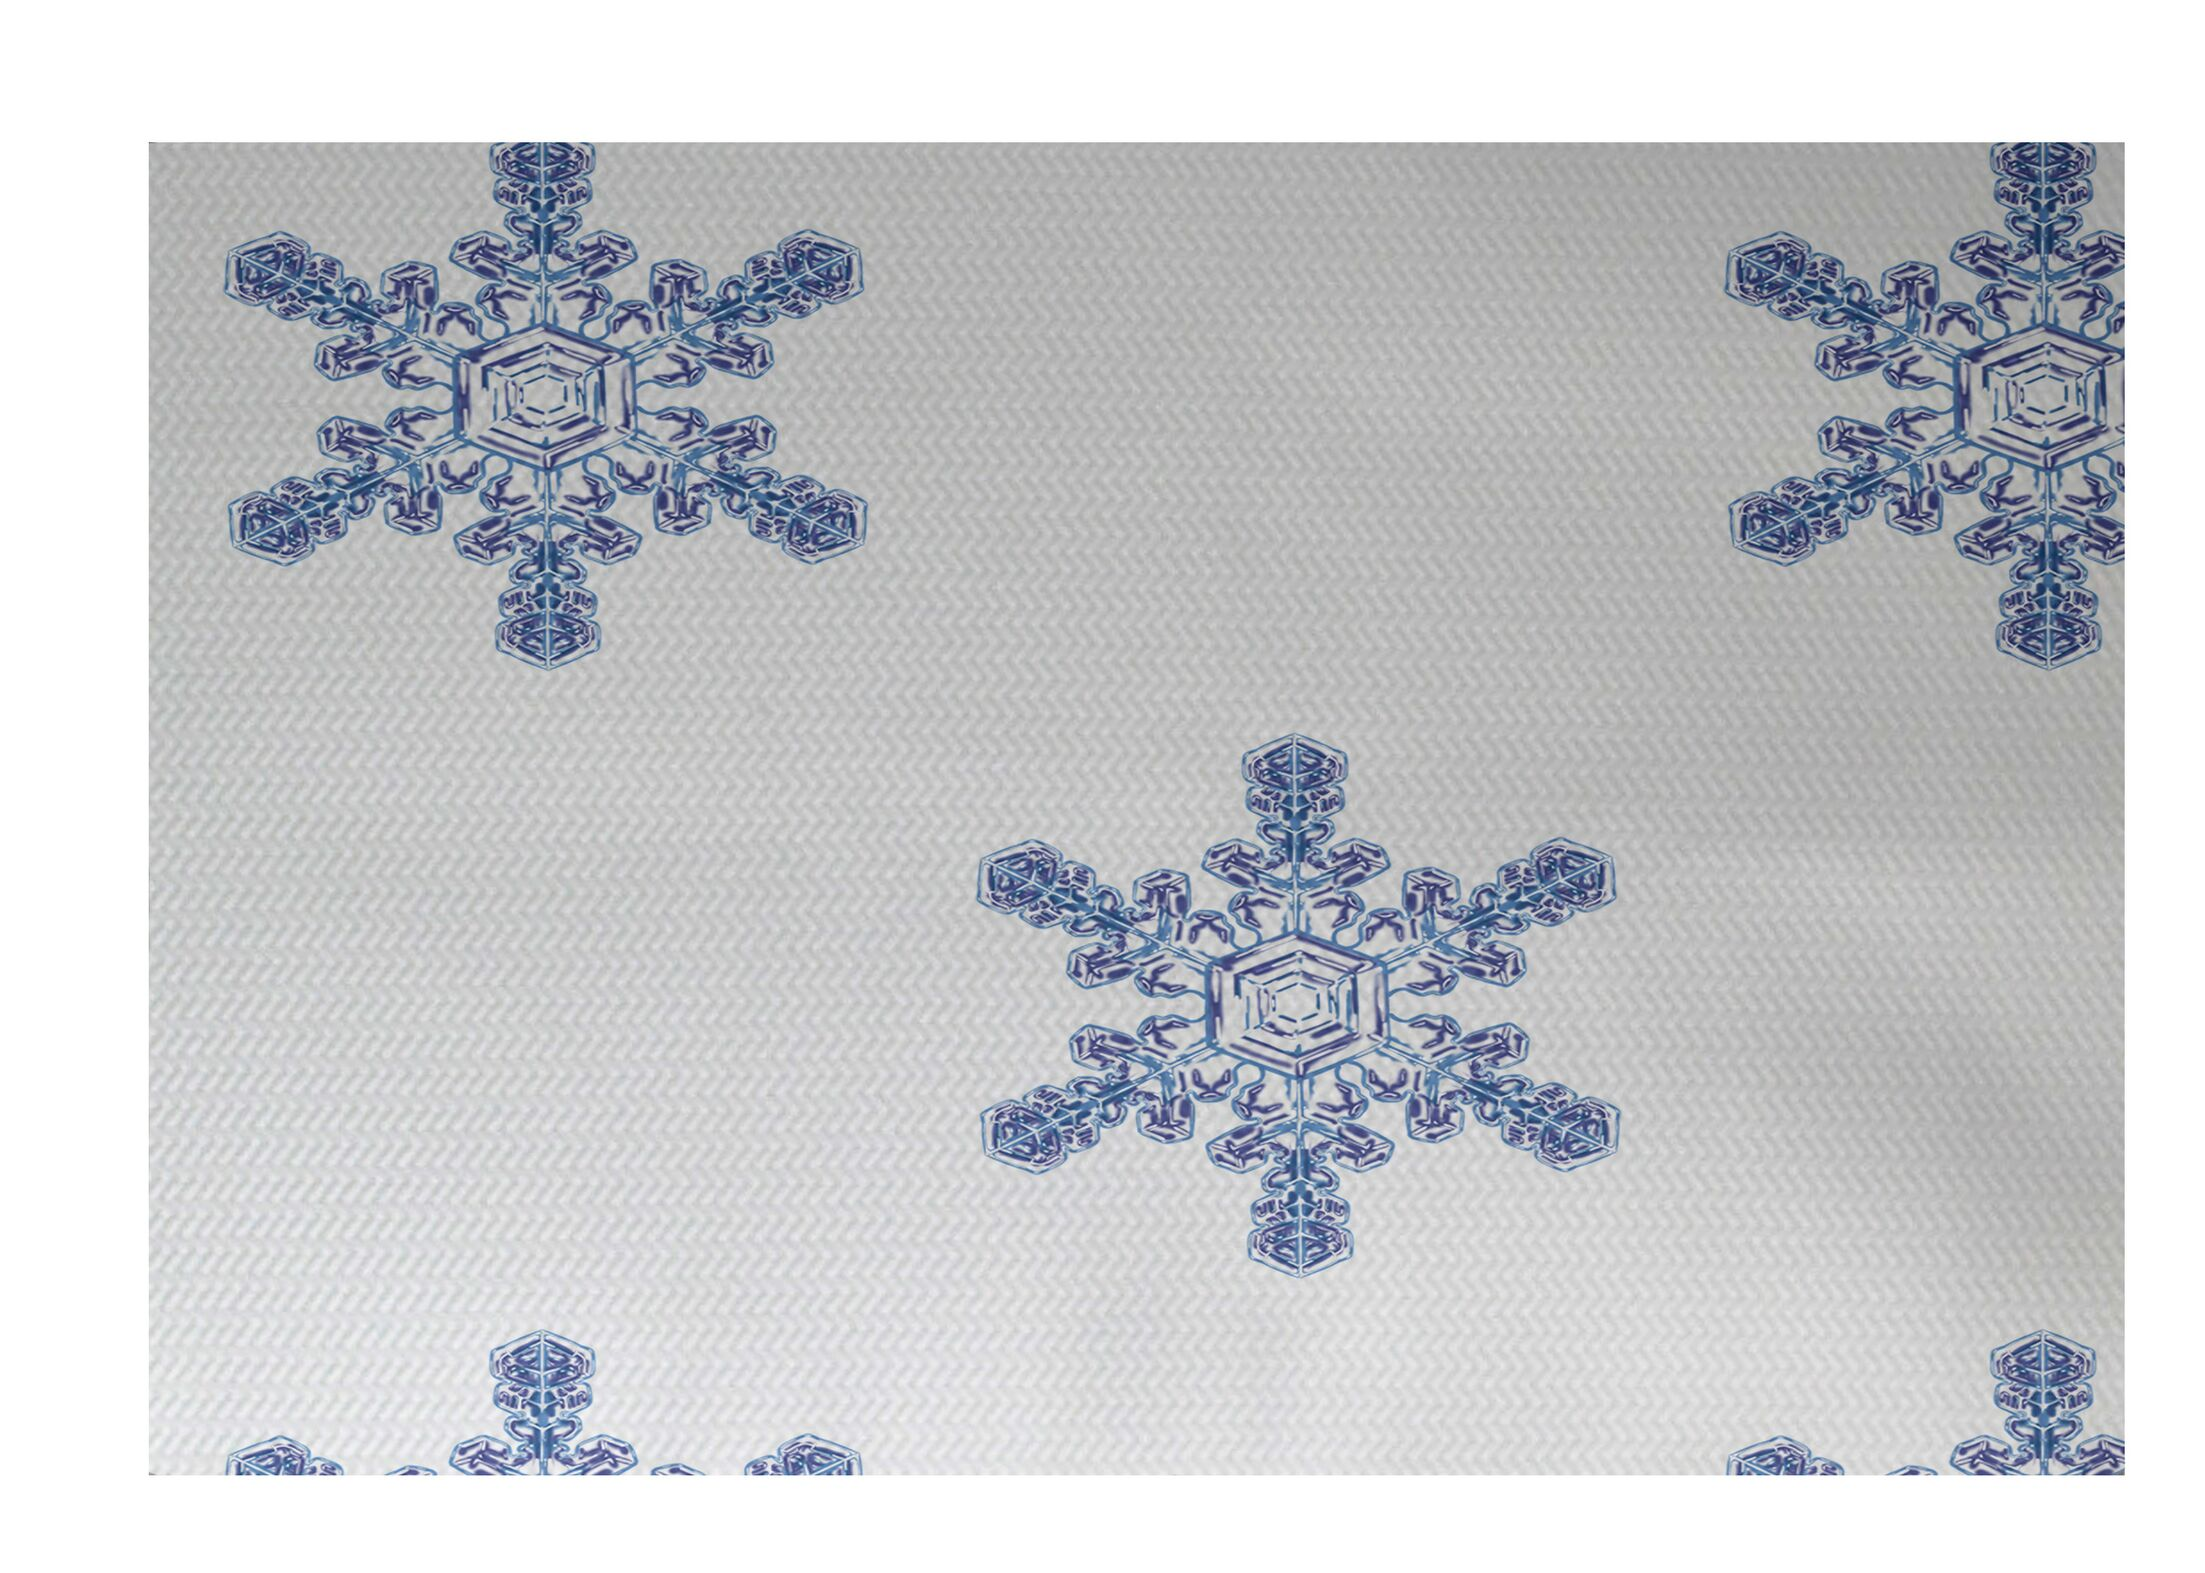 Flurries Decorative Holiday Print White Indoor/Outdoor Area Rug Rug Size: Rectangle 4' x 6'